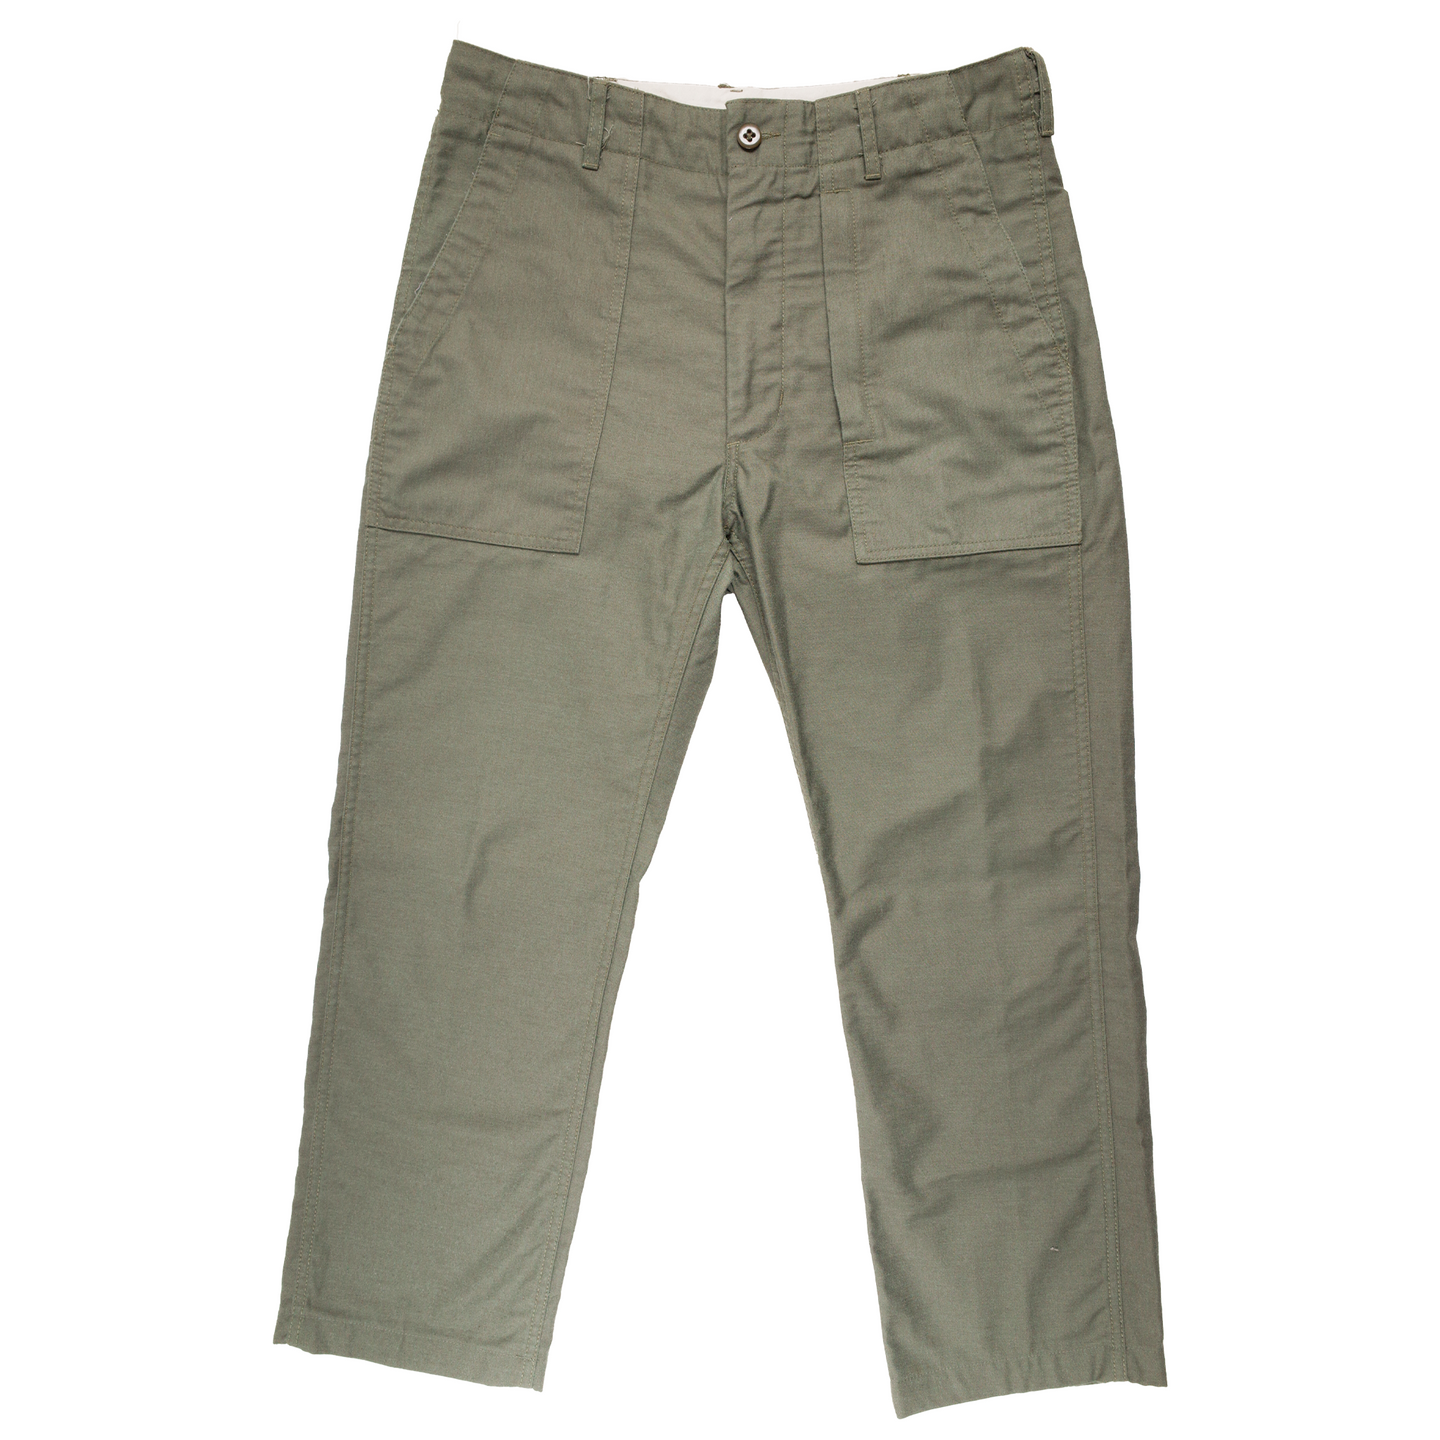 engineered garments olive fatigue pant <Br> size 32